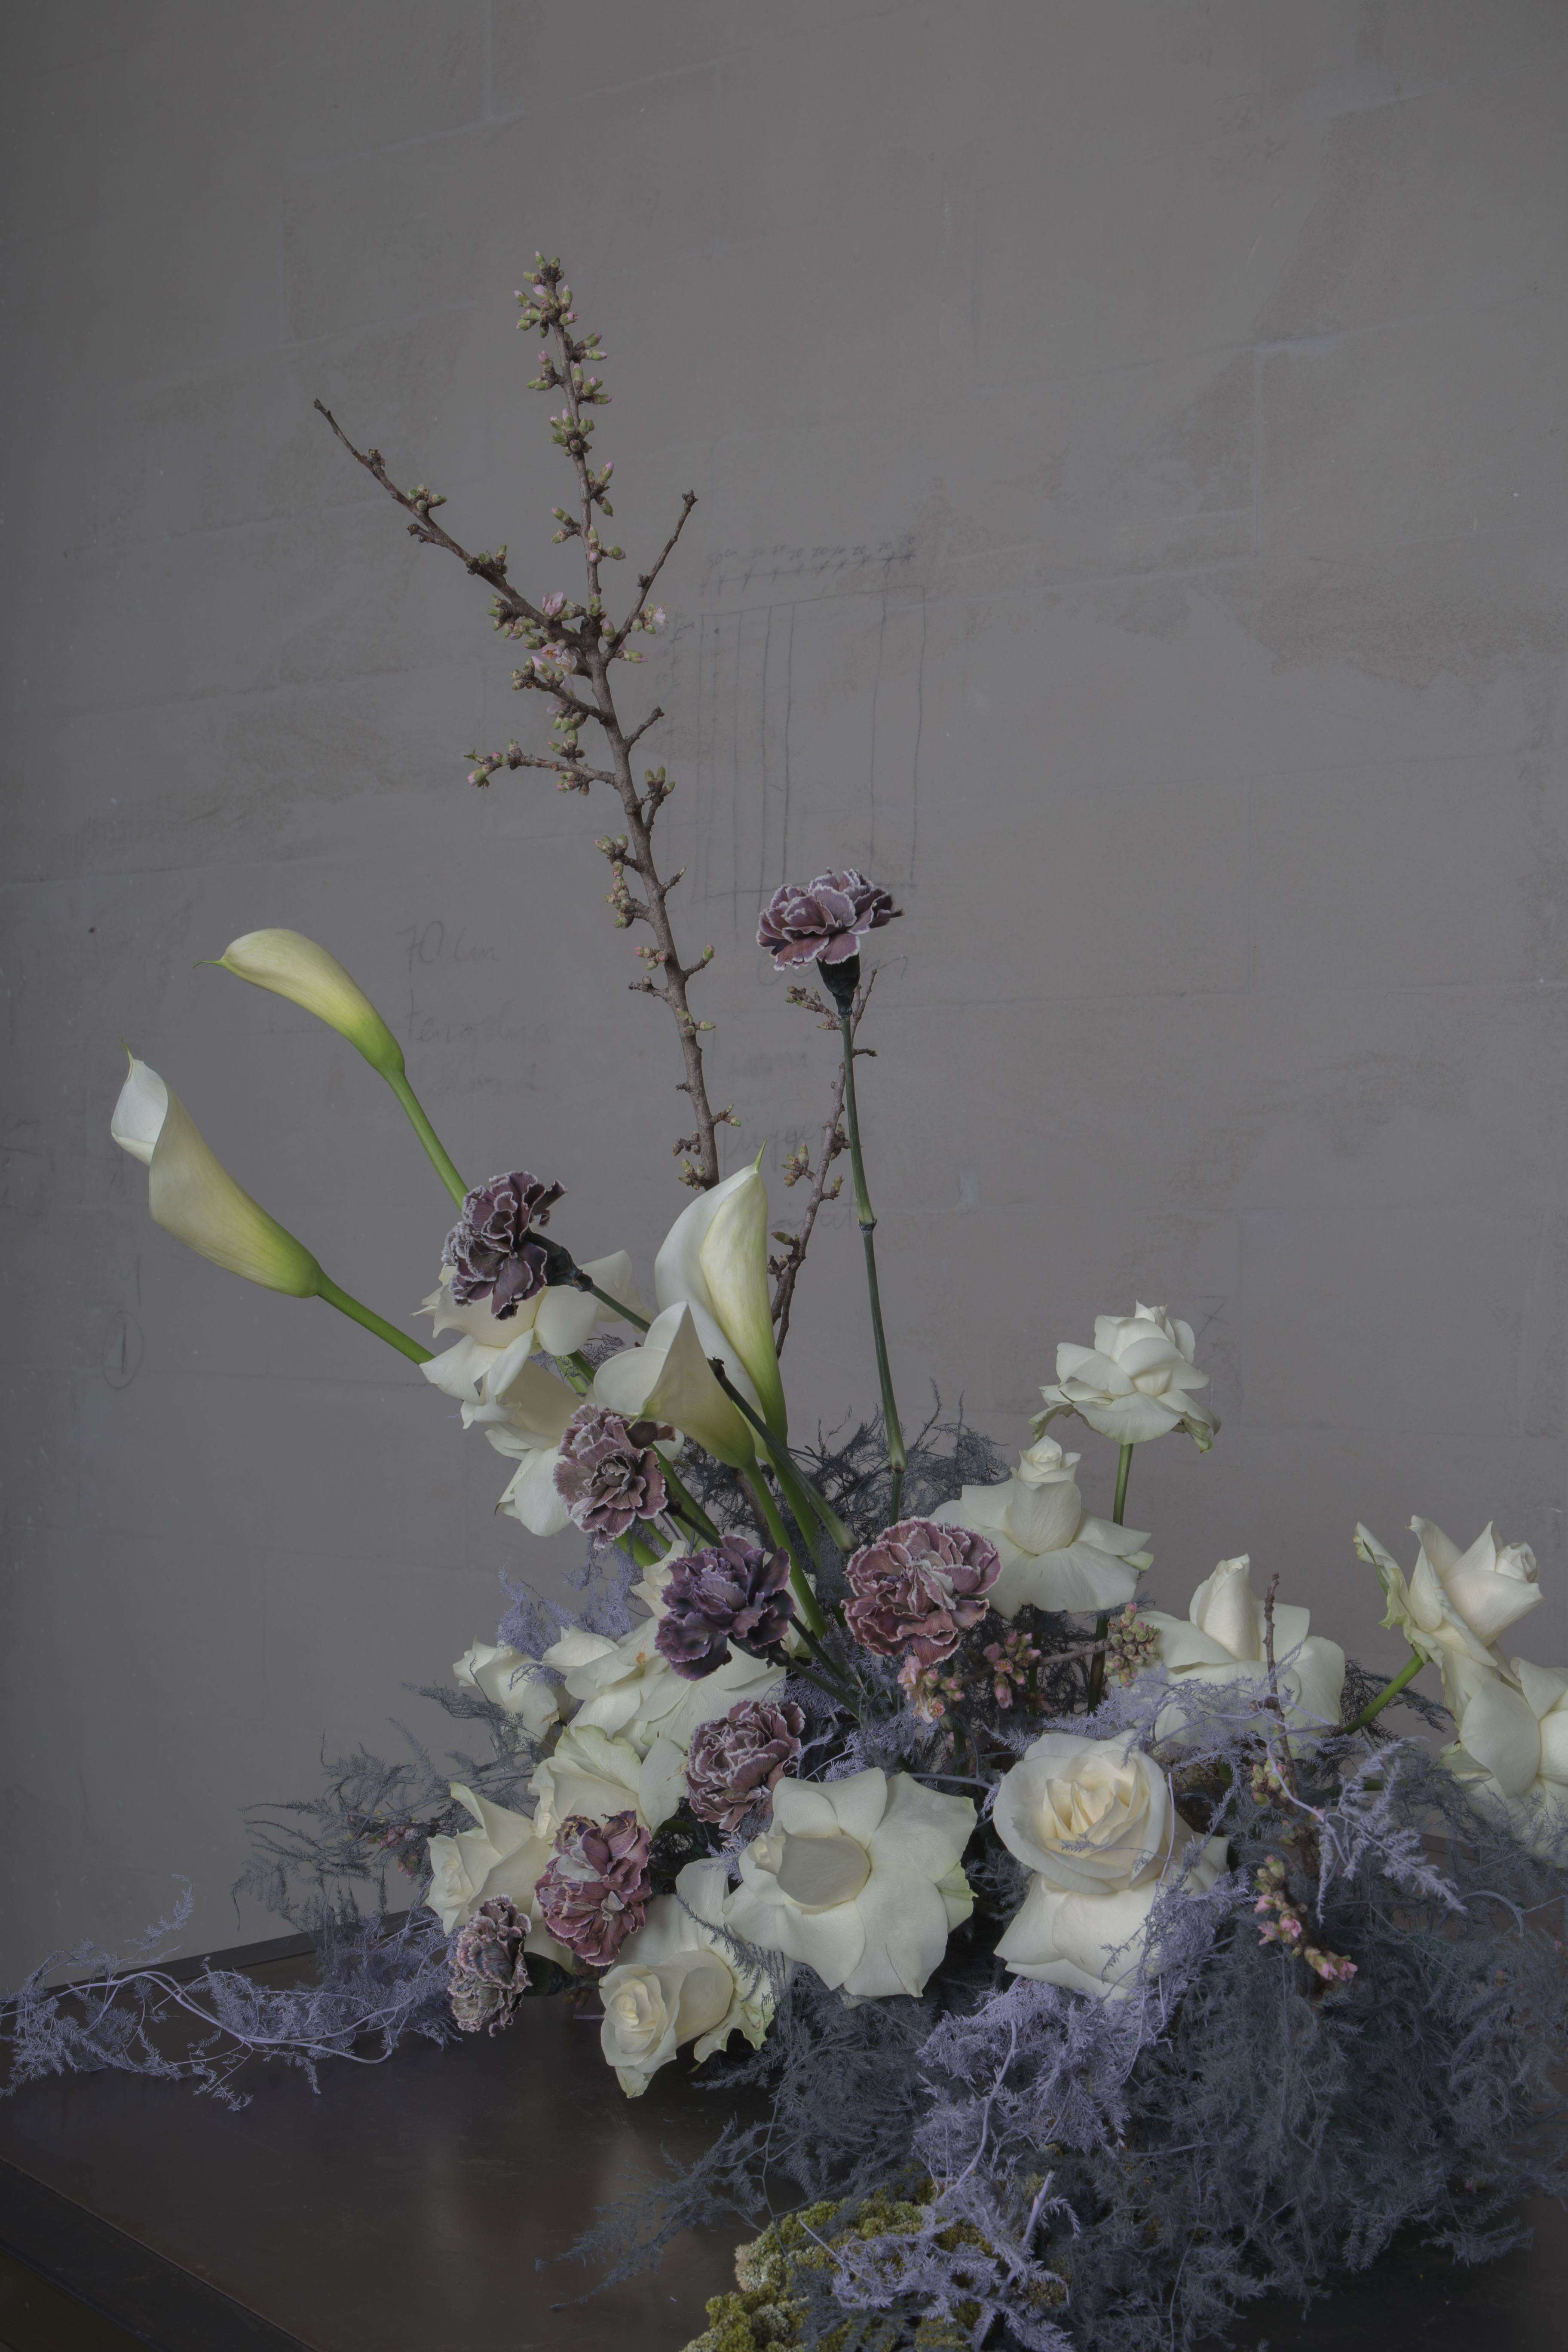 Table-piece-Finecut-weddings-collection-8-2019-lilac-and-white-with-fully-bloomed-roses-callas-lilac-dyed-asparagus-fern-and-striped-carnation-with-amaranth-tails-and-branches-of-almond